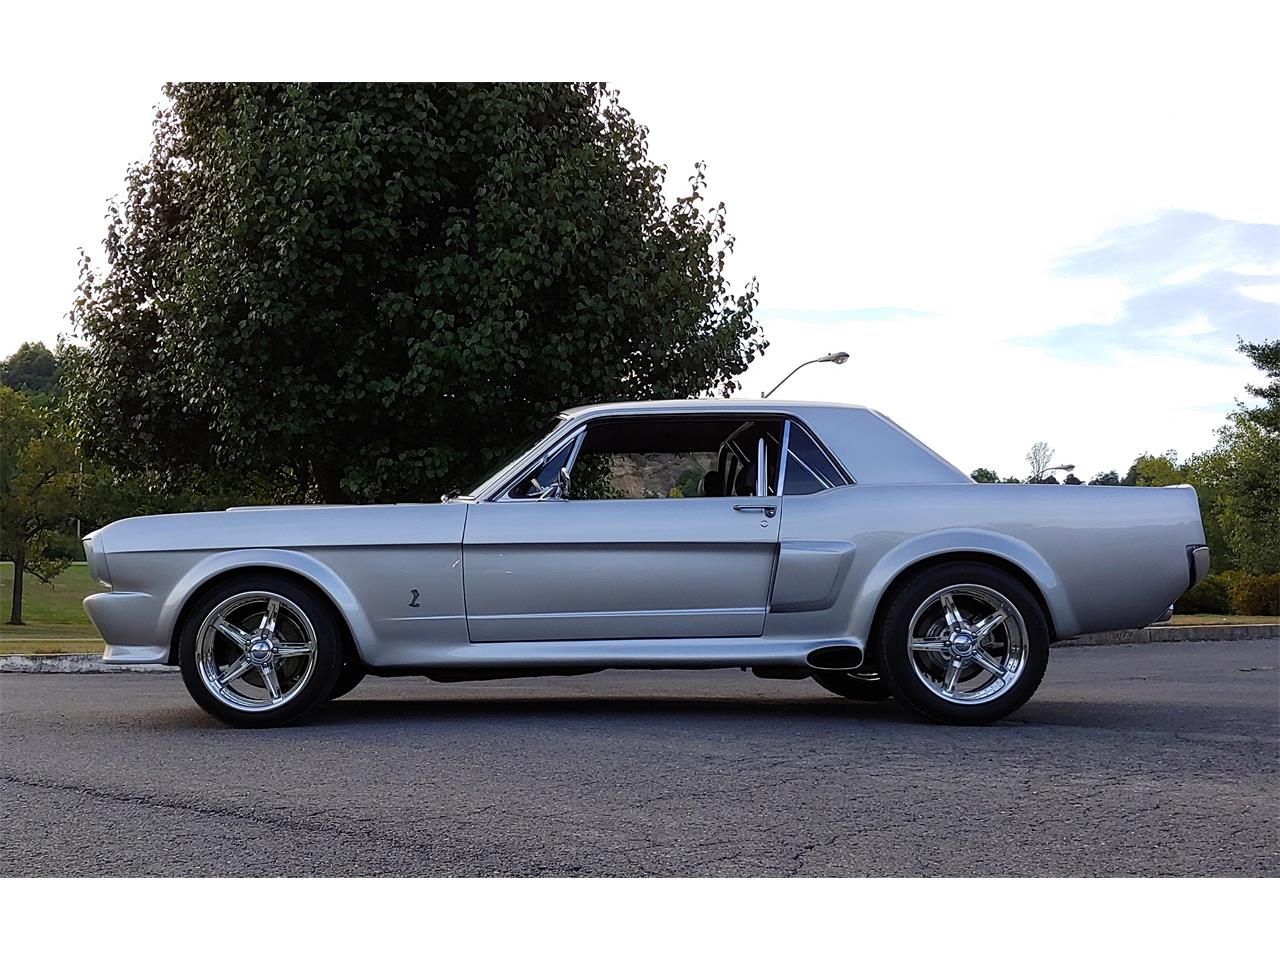 Ford Mustang Prix tout compris 1966